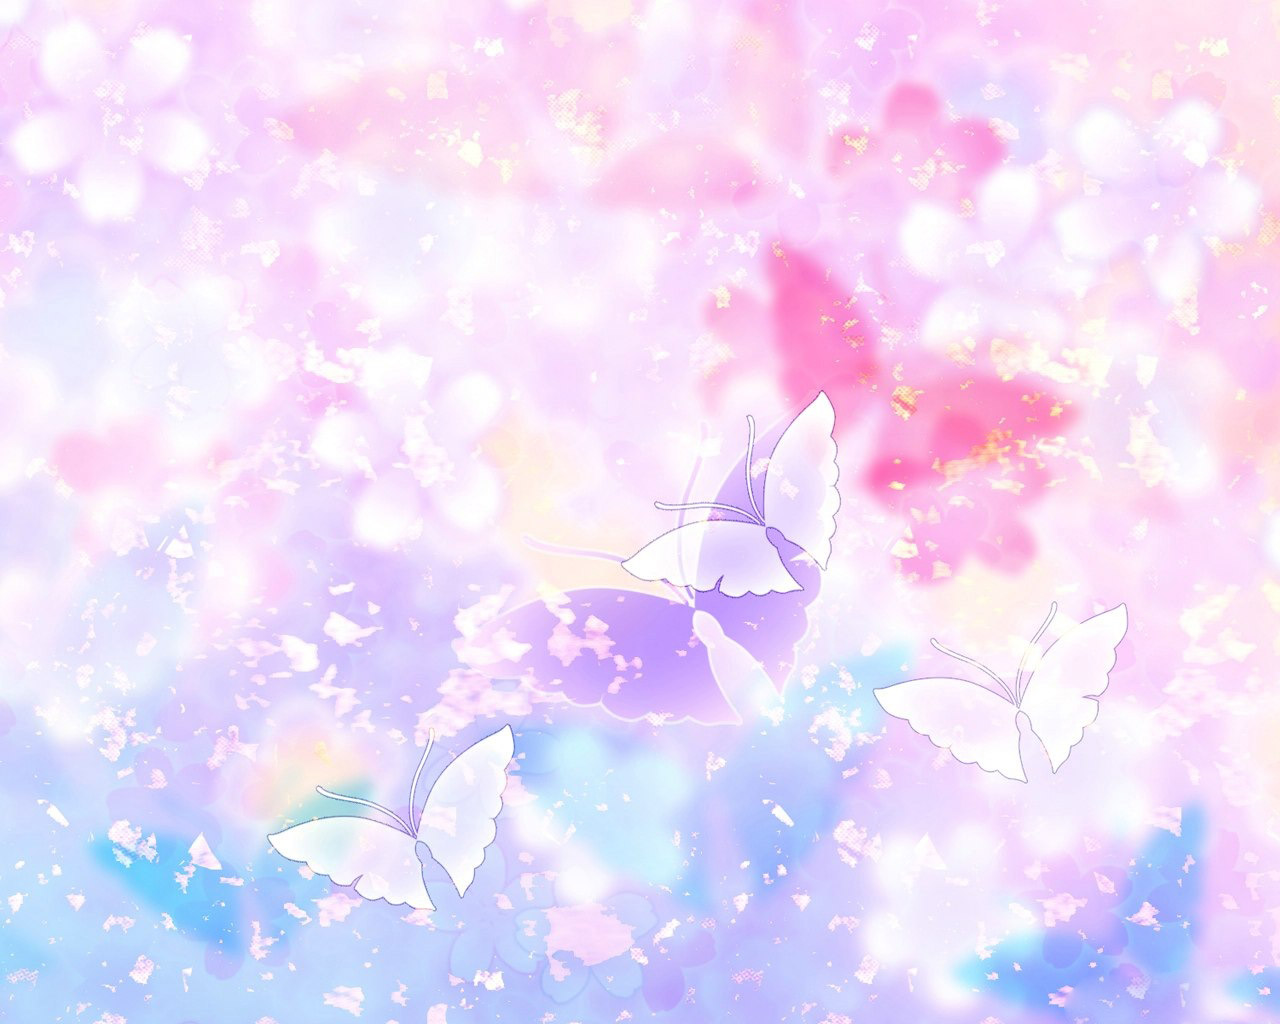 Flowers and Butterflies clipart desktop hd Wallpaper High Quality 1280x1024